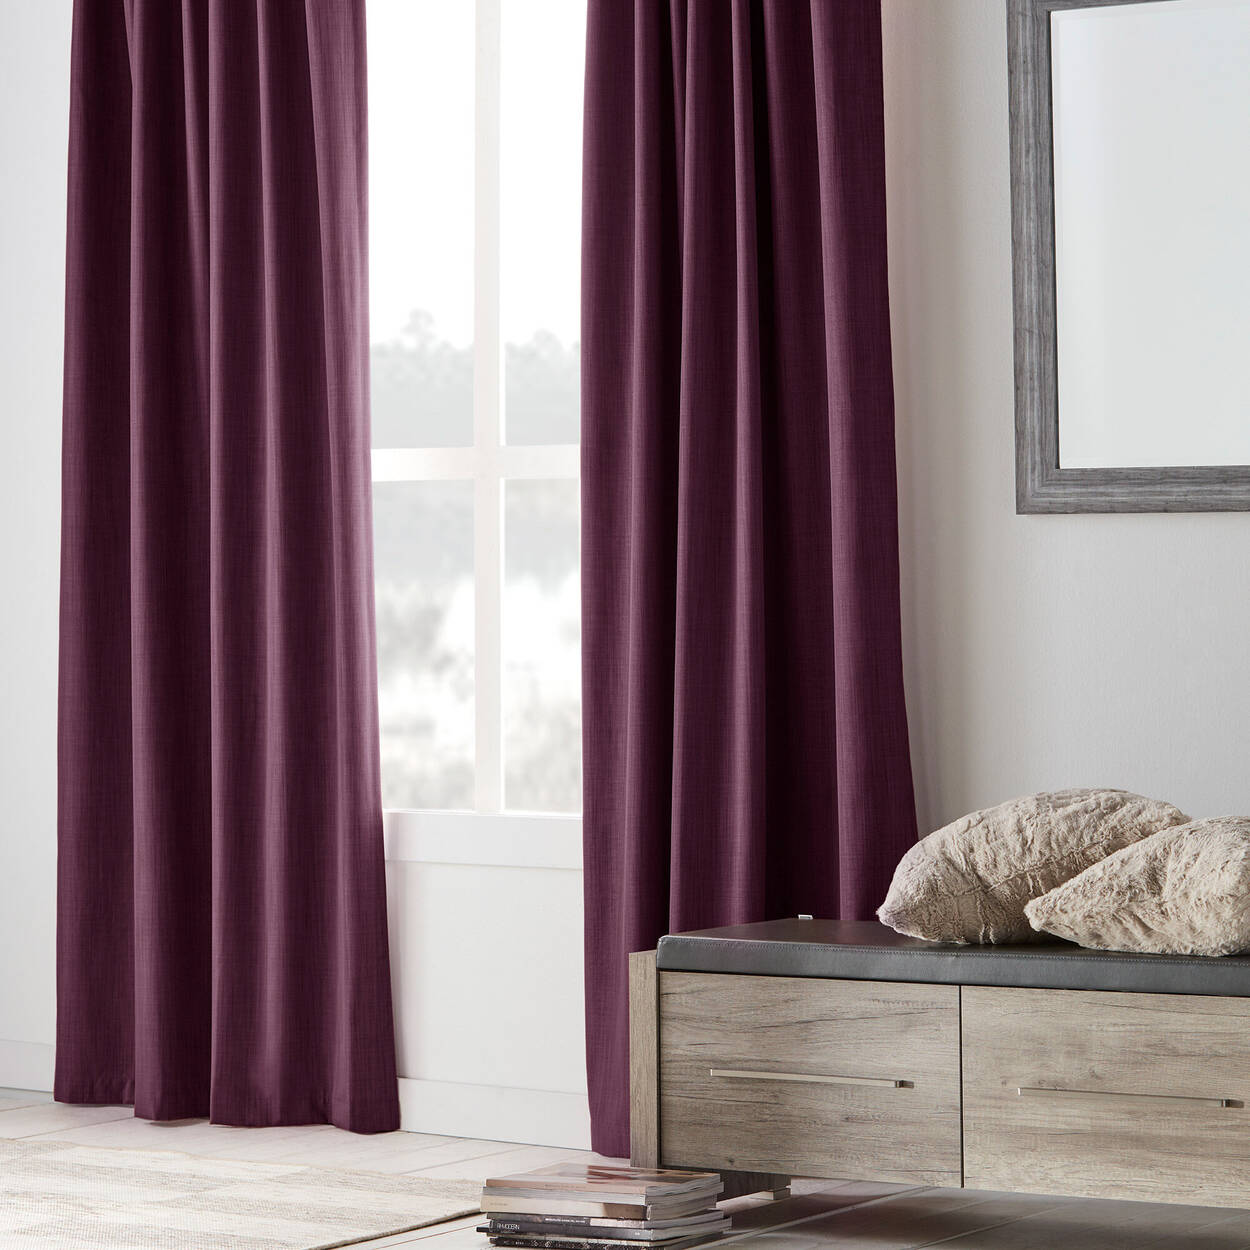 Vence Blackout Curtain with Hidden Back Tab